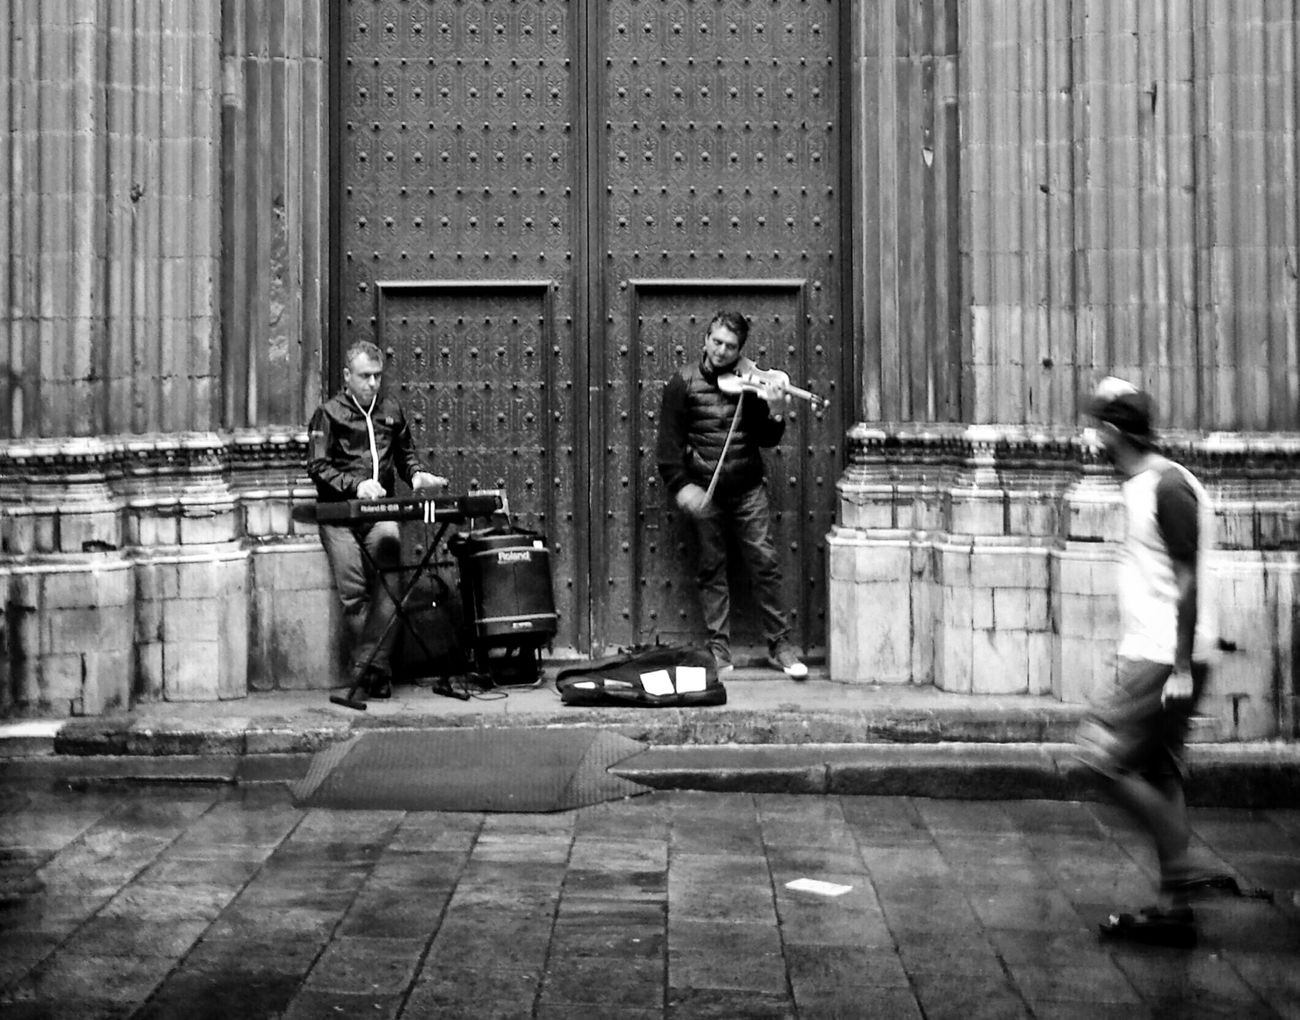 Mi Serie Barcelona Streetphotography Streetphoto_bw Musicians Monochrome Black And White